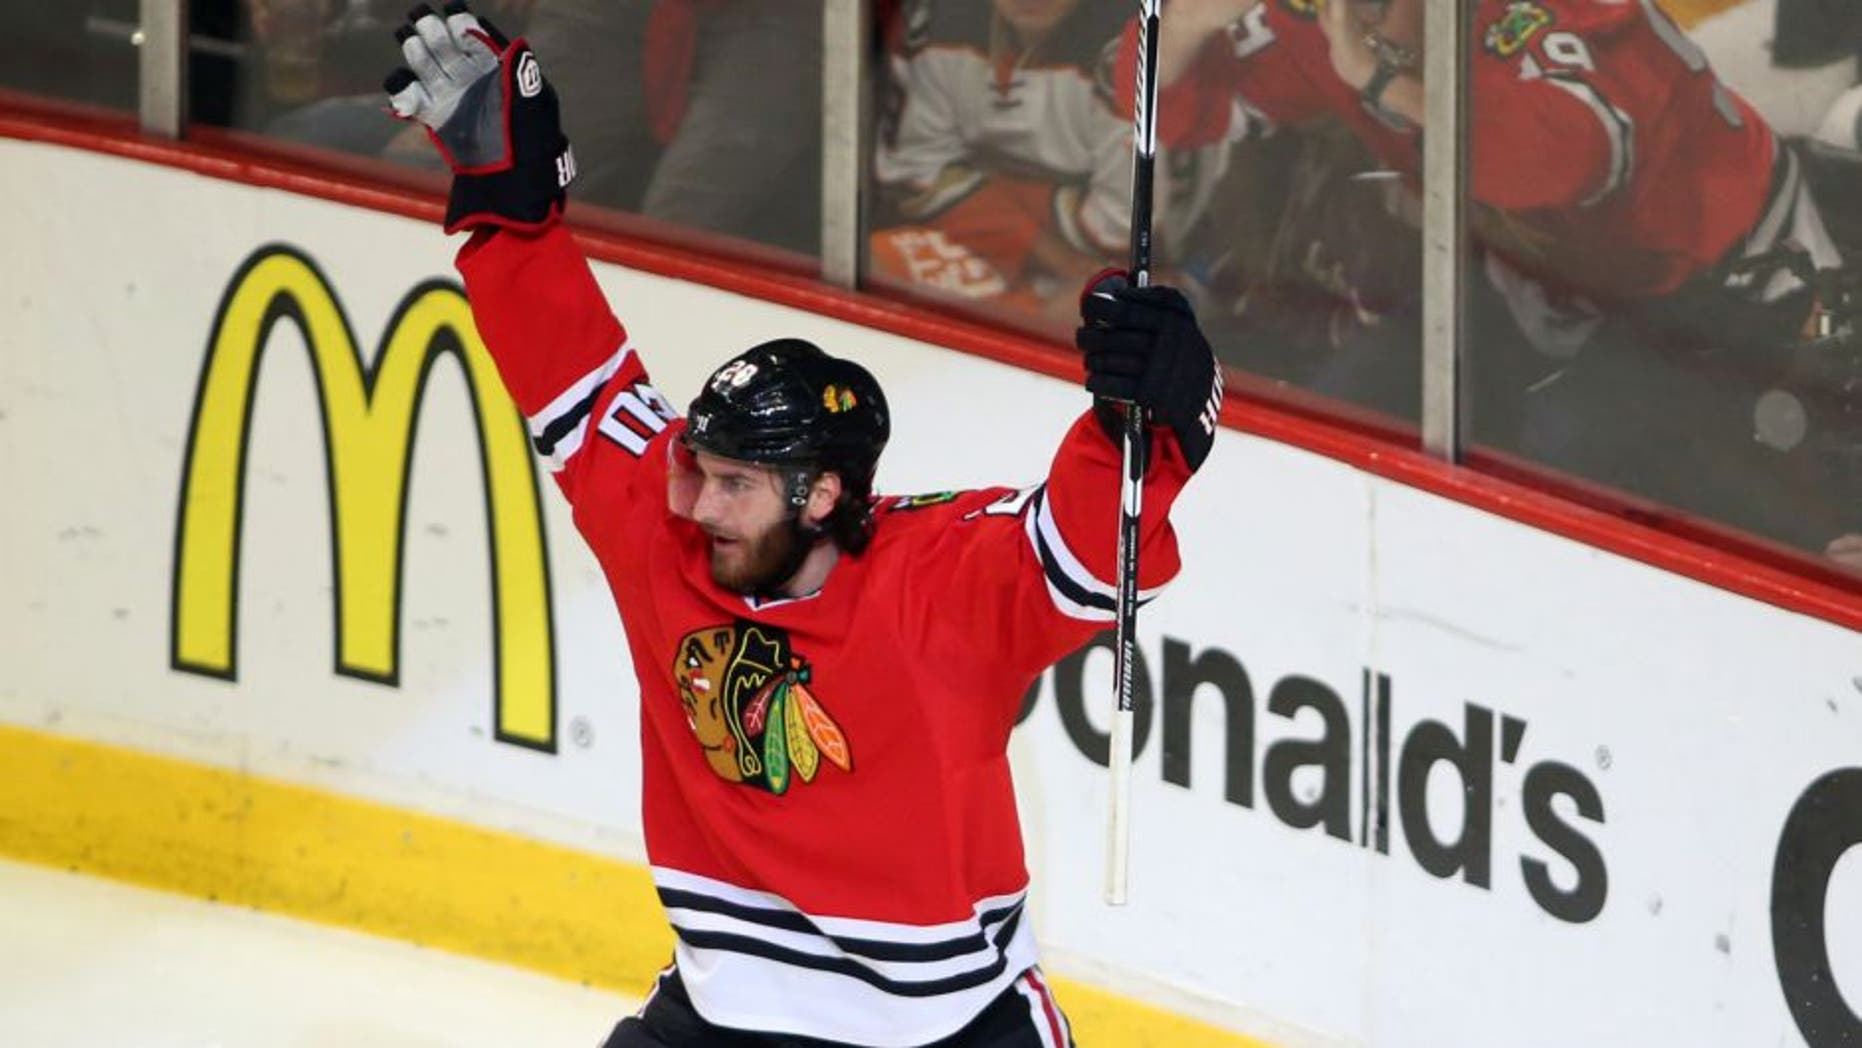 May 27, 2015; Chicago, IL, USA; Chicago Blackhawks left wing Brandon Saad (20) celebrates after scoring a goal against the Anaheim Ducks in the second period in game six of the Western Conference Final of the 2015 Stanley Cup Playoffs at United Center. Mandatory Credit: Jerry Lai-USA TODAY Sports